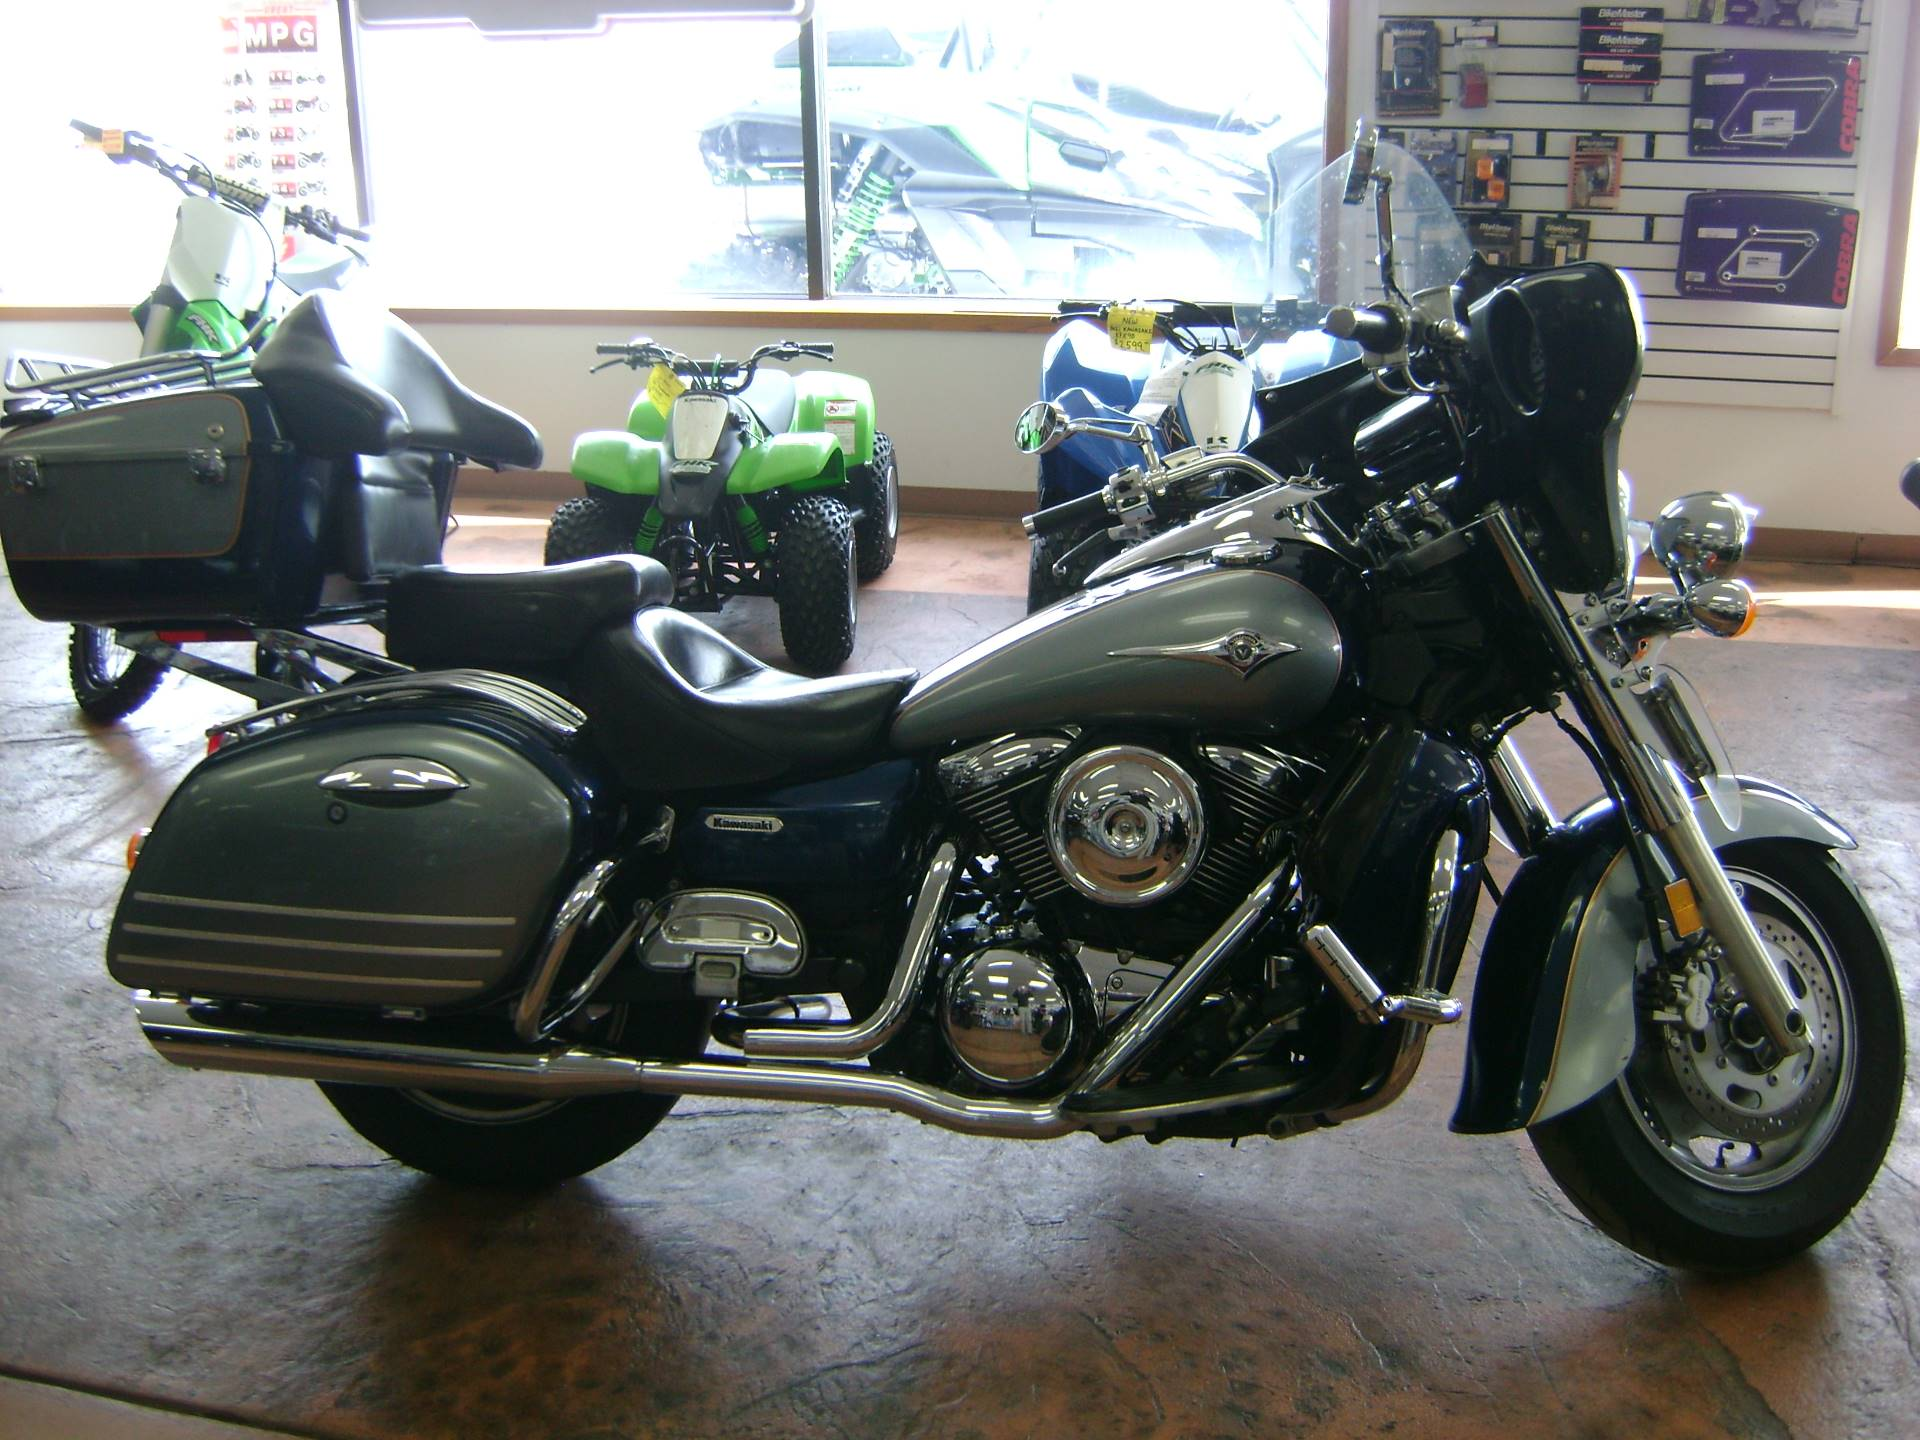 2008 Kawasaki NOMAD 1600 in Freeport, Illinois - Photo 1